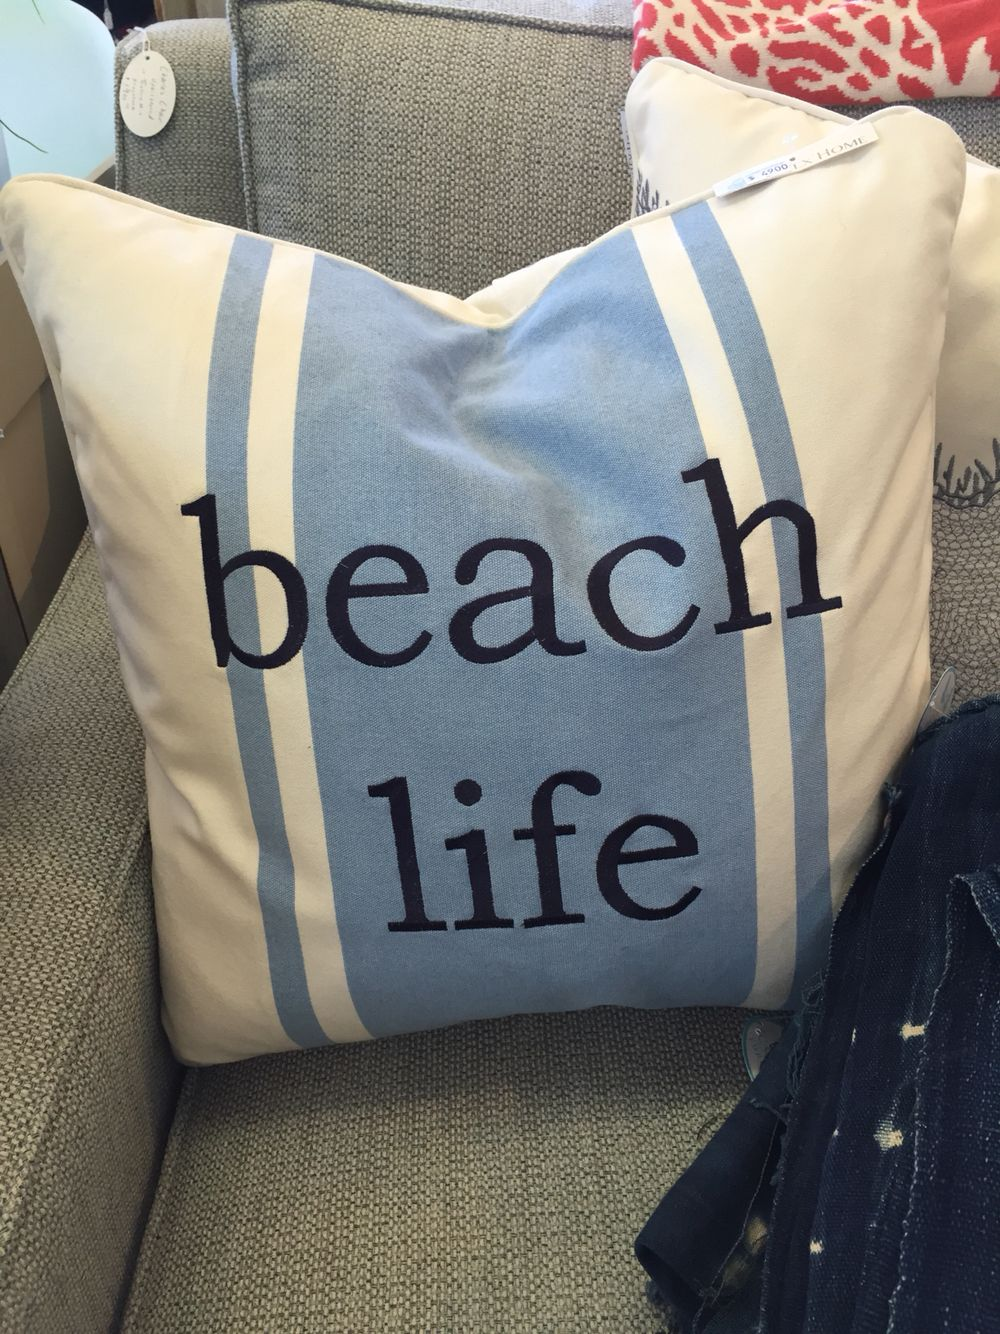 Beach Life Pillow from Cottage Furnishings. Coastal, coastal cool, beach, nautical, cape cod, nantucket, blues